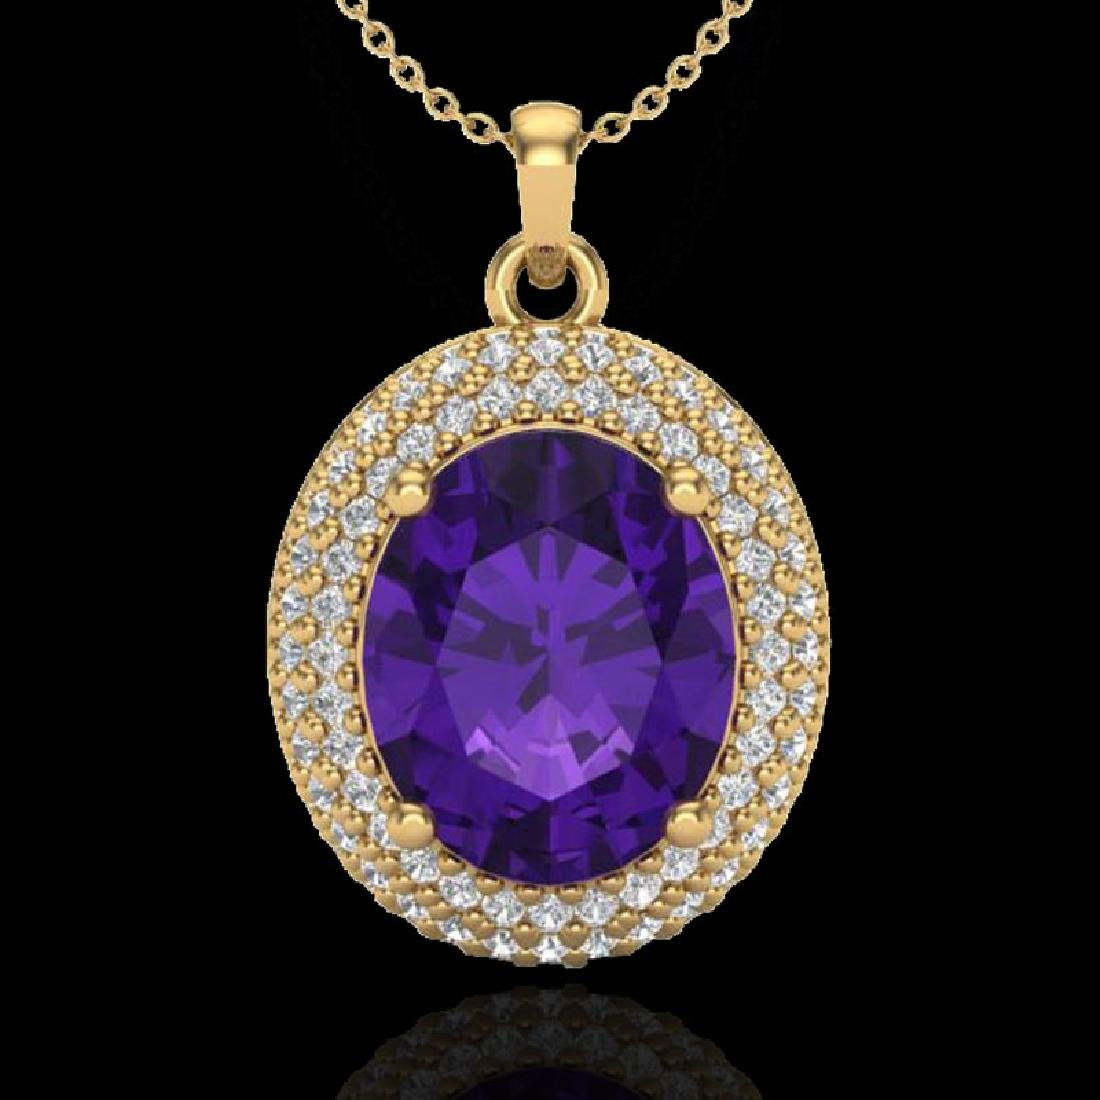 4 CTW Amethyst & Micro Pave VS/SI Diamond Necklace 18K